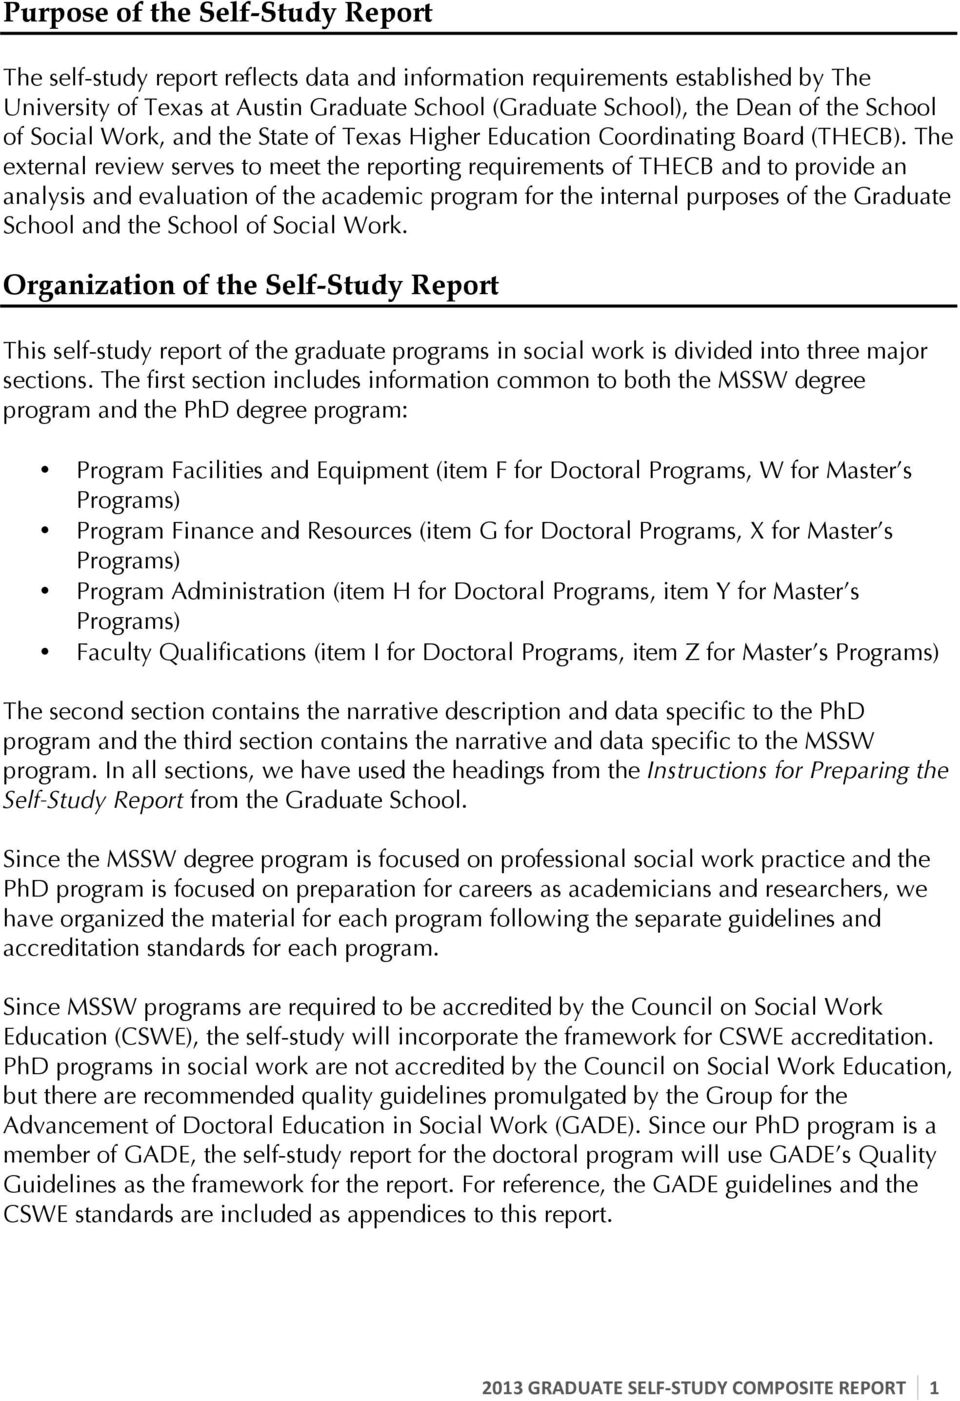 The external review serves to meet the reporting requirements of THECB and to provide an analysis and evaluation of the academic program for the internal purposes of the Graduate School and the